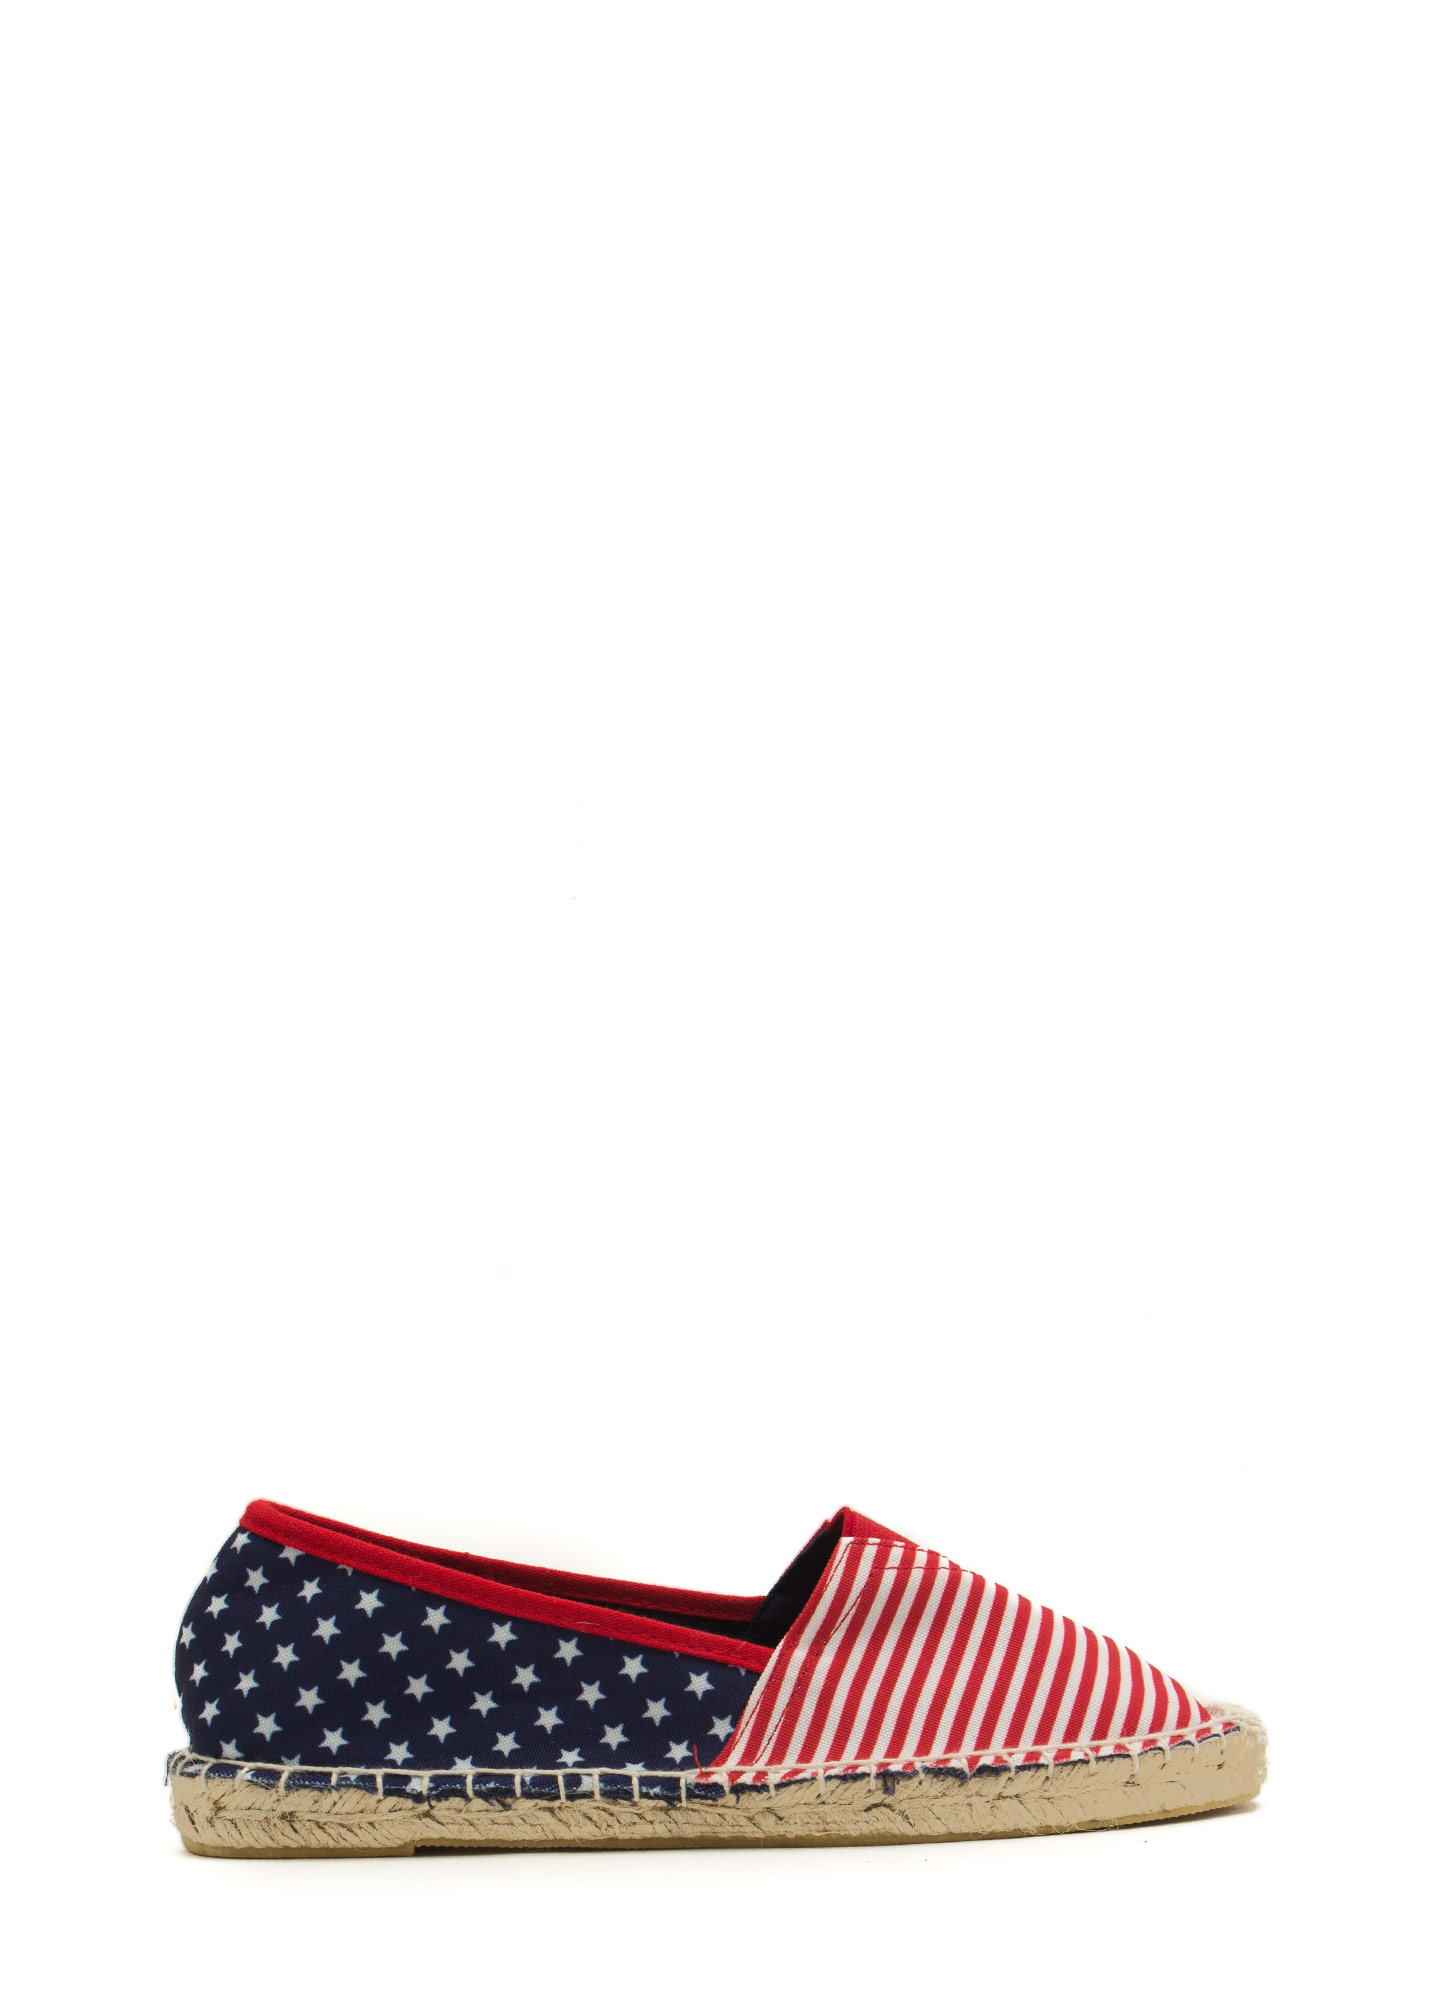 Pretty Patriotic Espadrille Flats FLAG